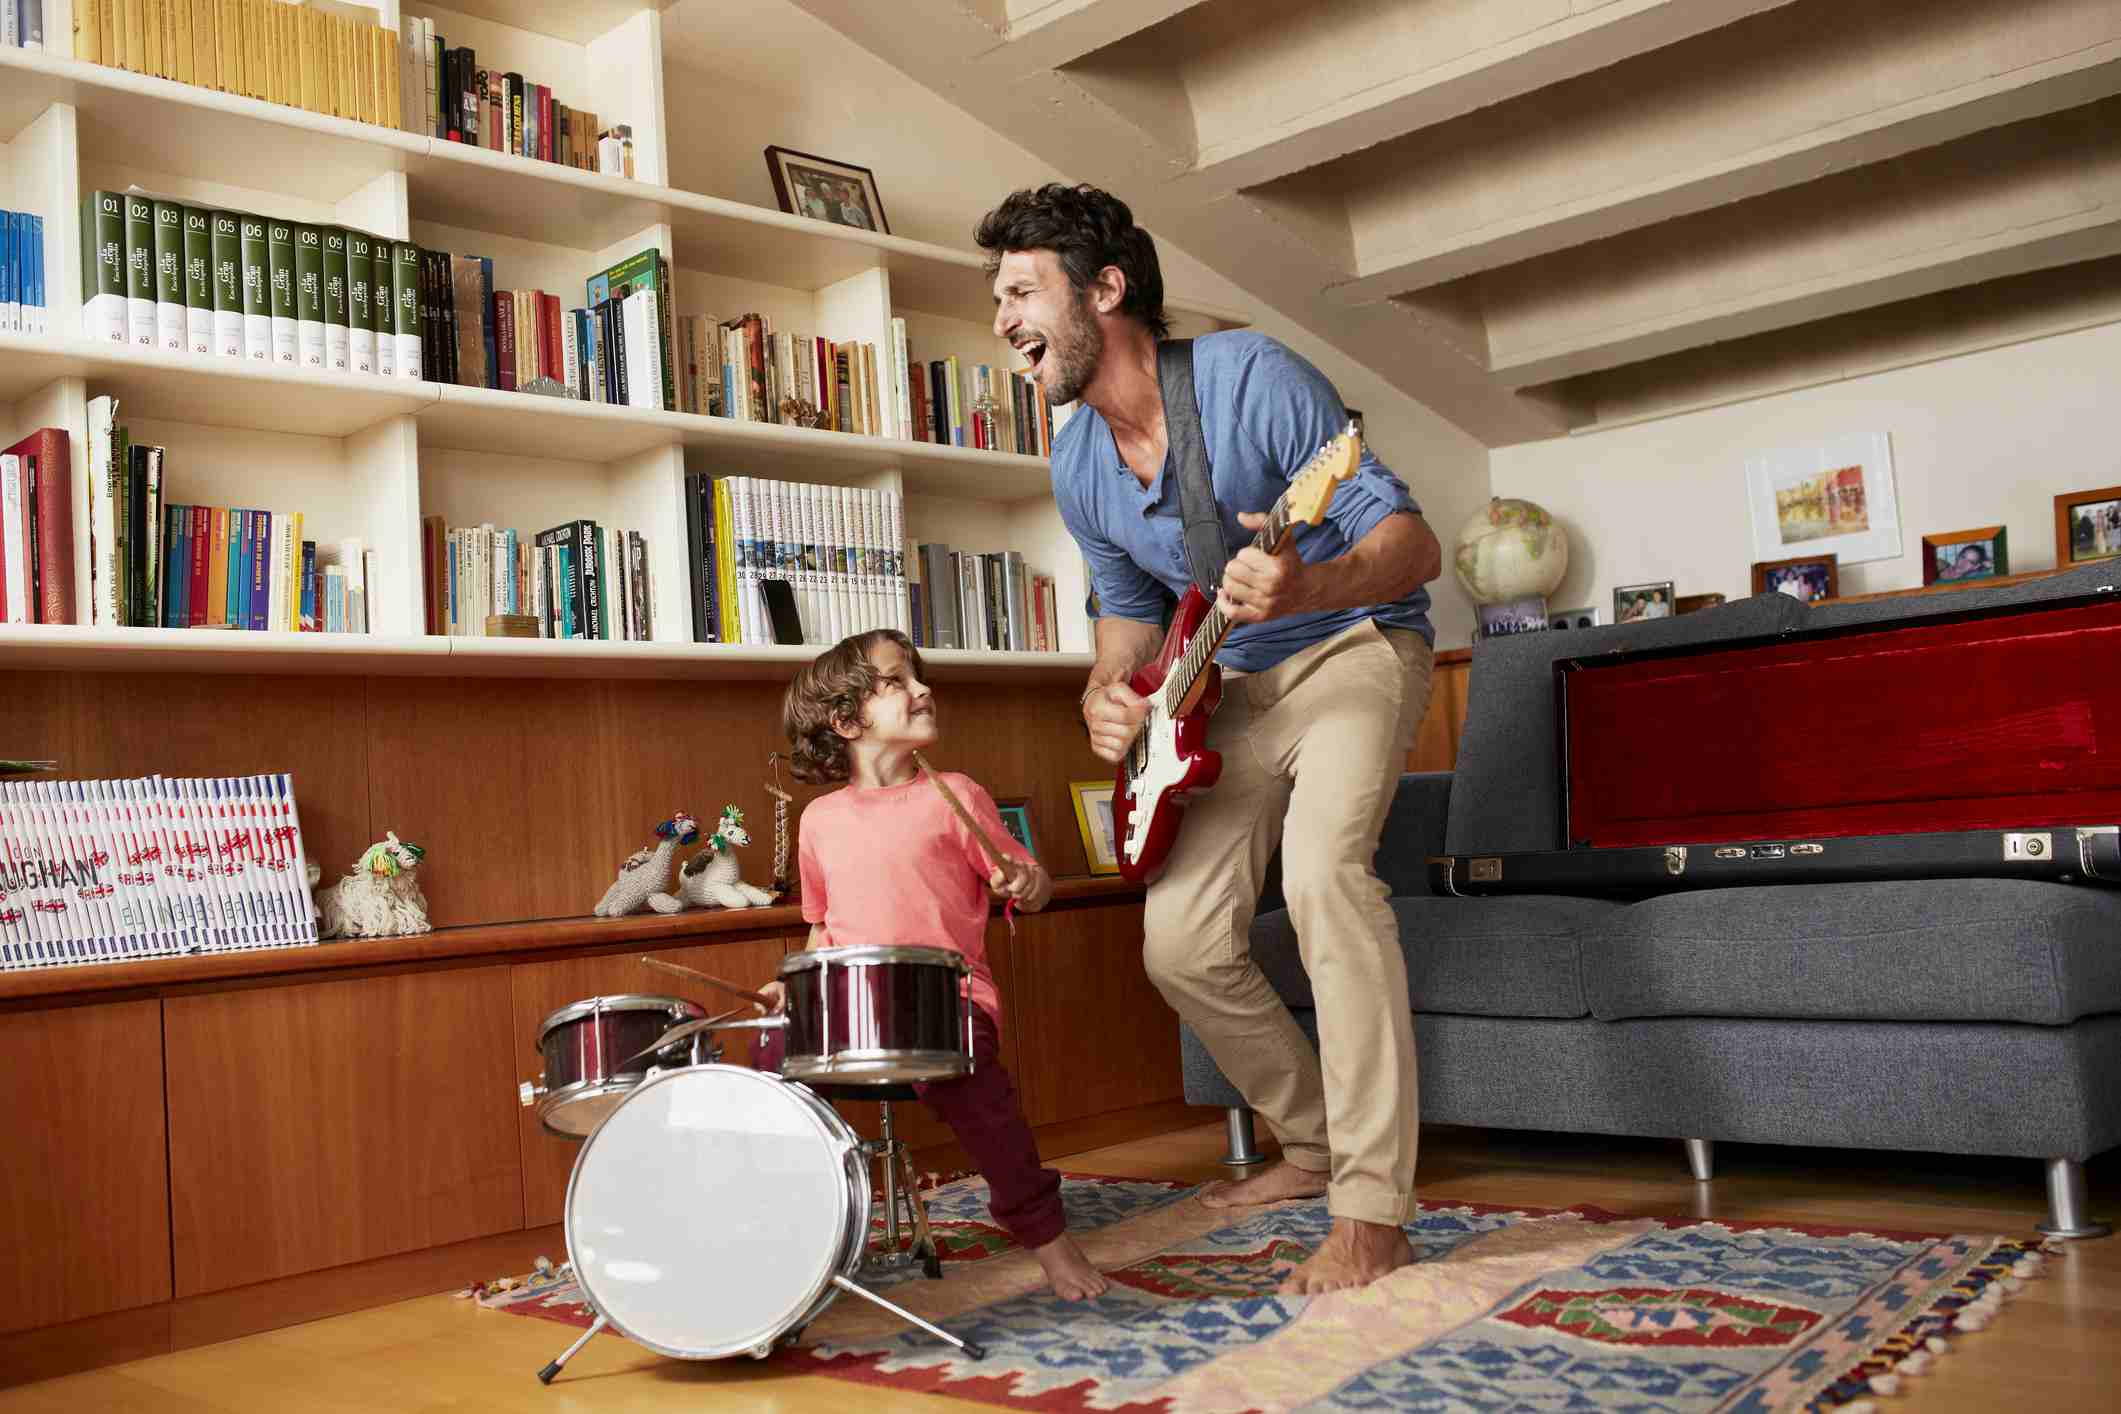 Father and son playing musical instruments